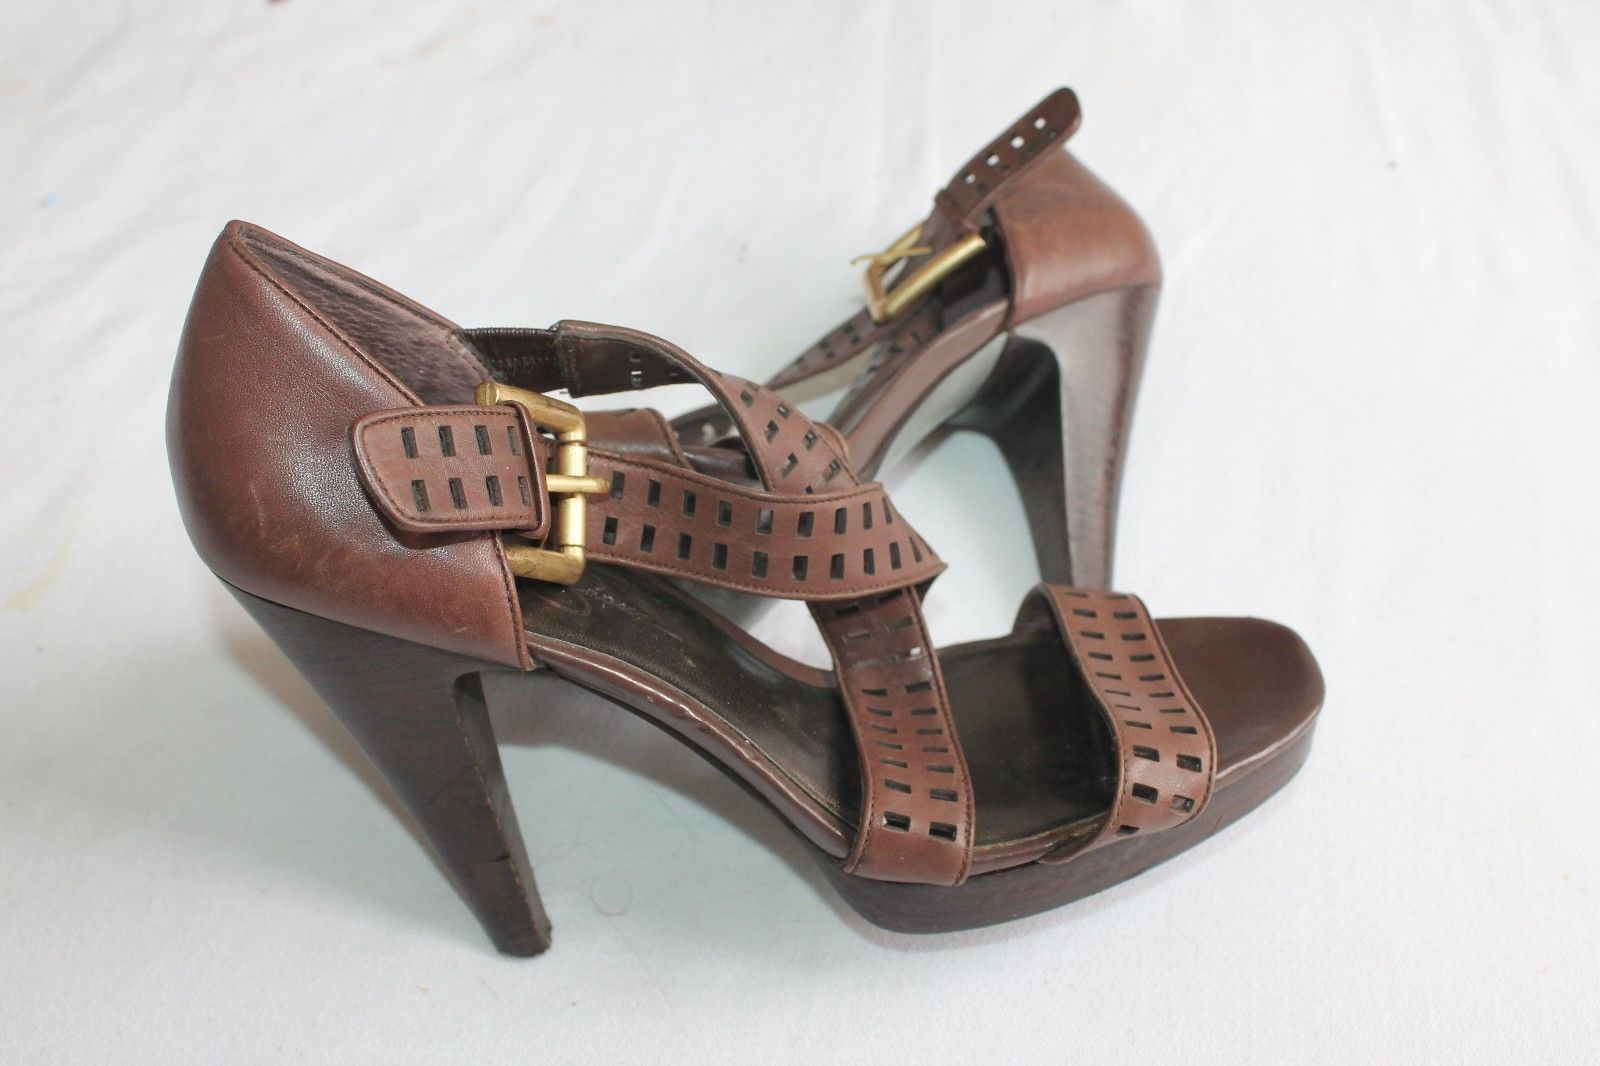 Primary image for Jessica Simpson Brown Leather Strappy Open Toe High Heels Size 9 B Shoes Derry